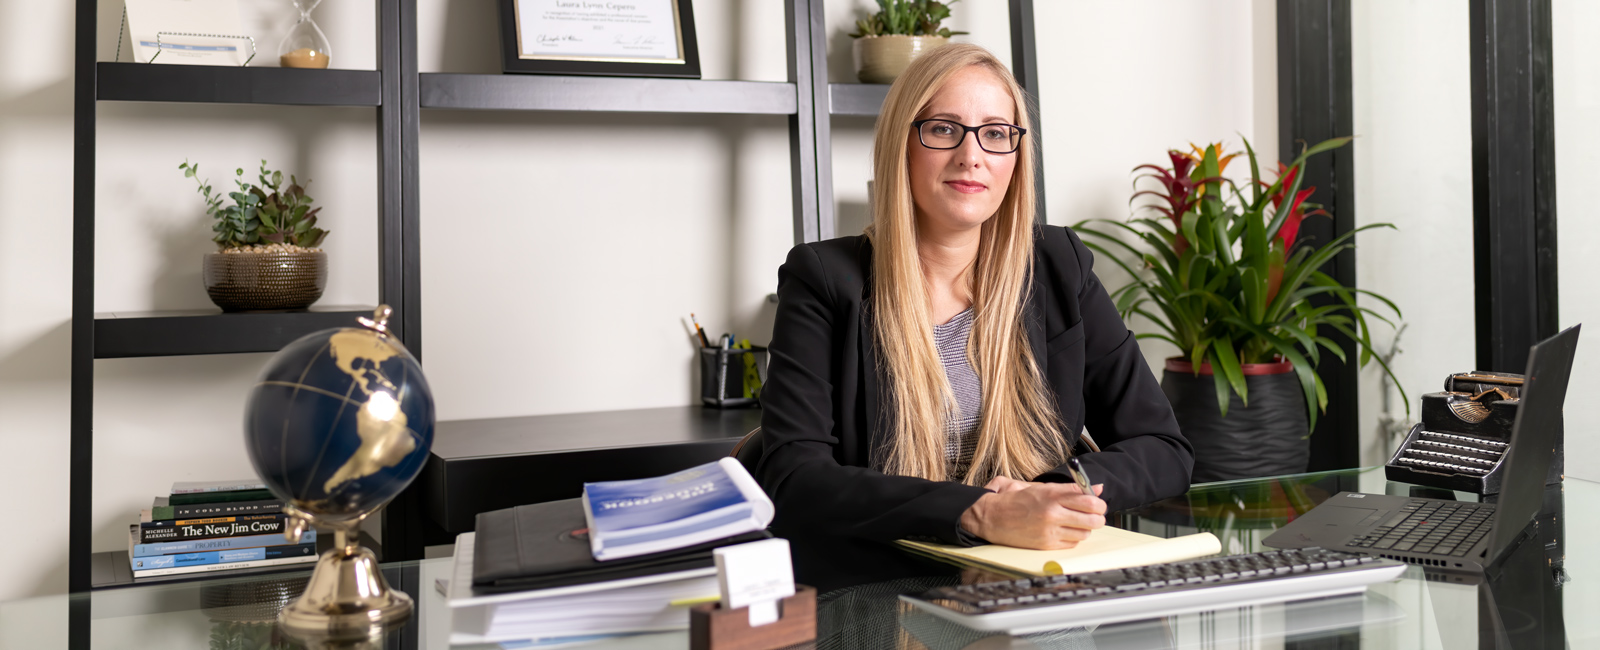 Raising the Bar: Valencia paralegal grad excels in the classroom and courtroom to become a defense attorney.